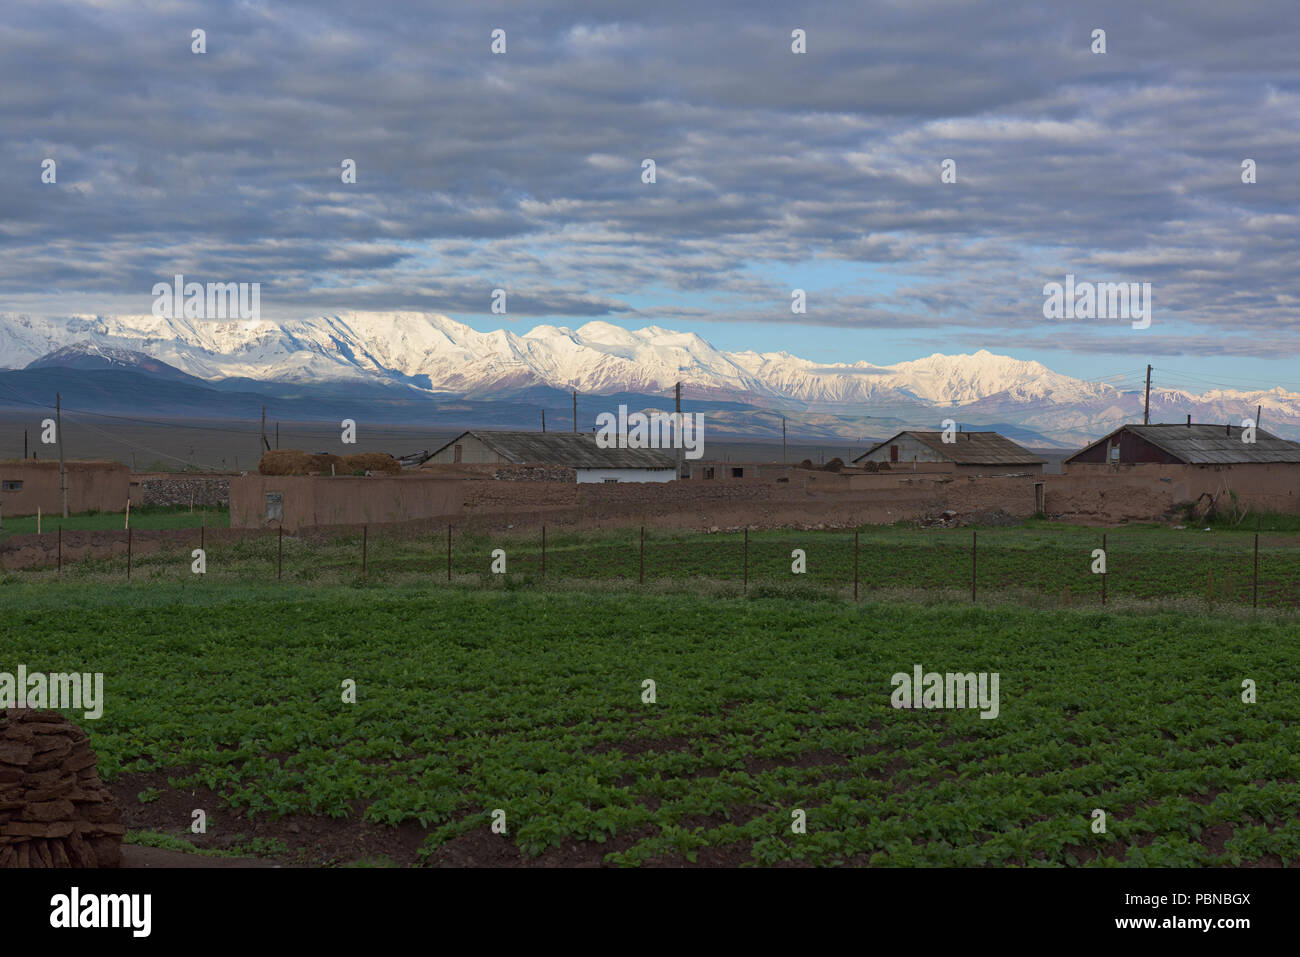 7,000 metre Peak Lenin and the high Pamirs at the start of the Pamir Highway, Sary Tash, Kyrgyzstan Stock Photo